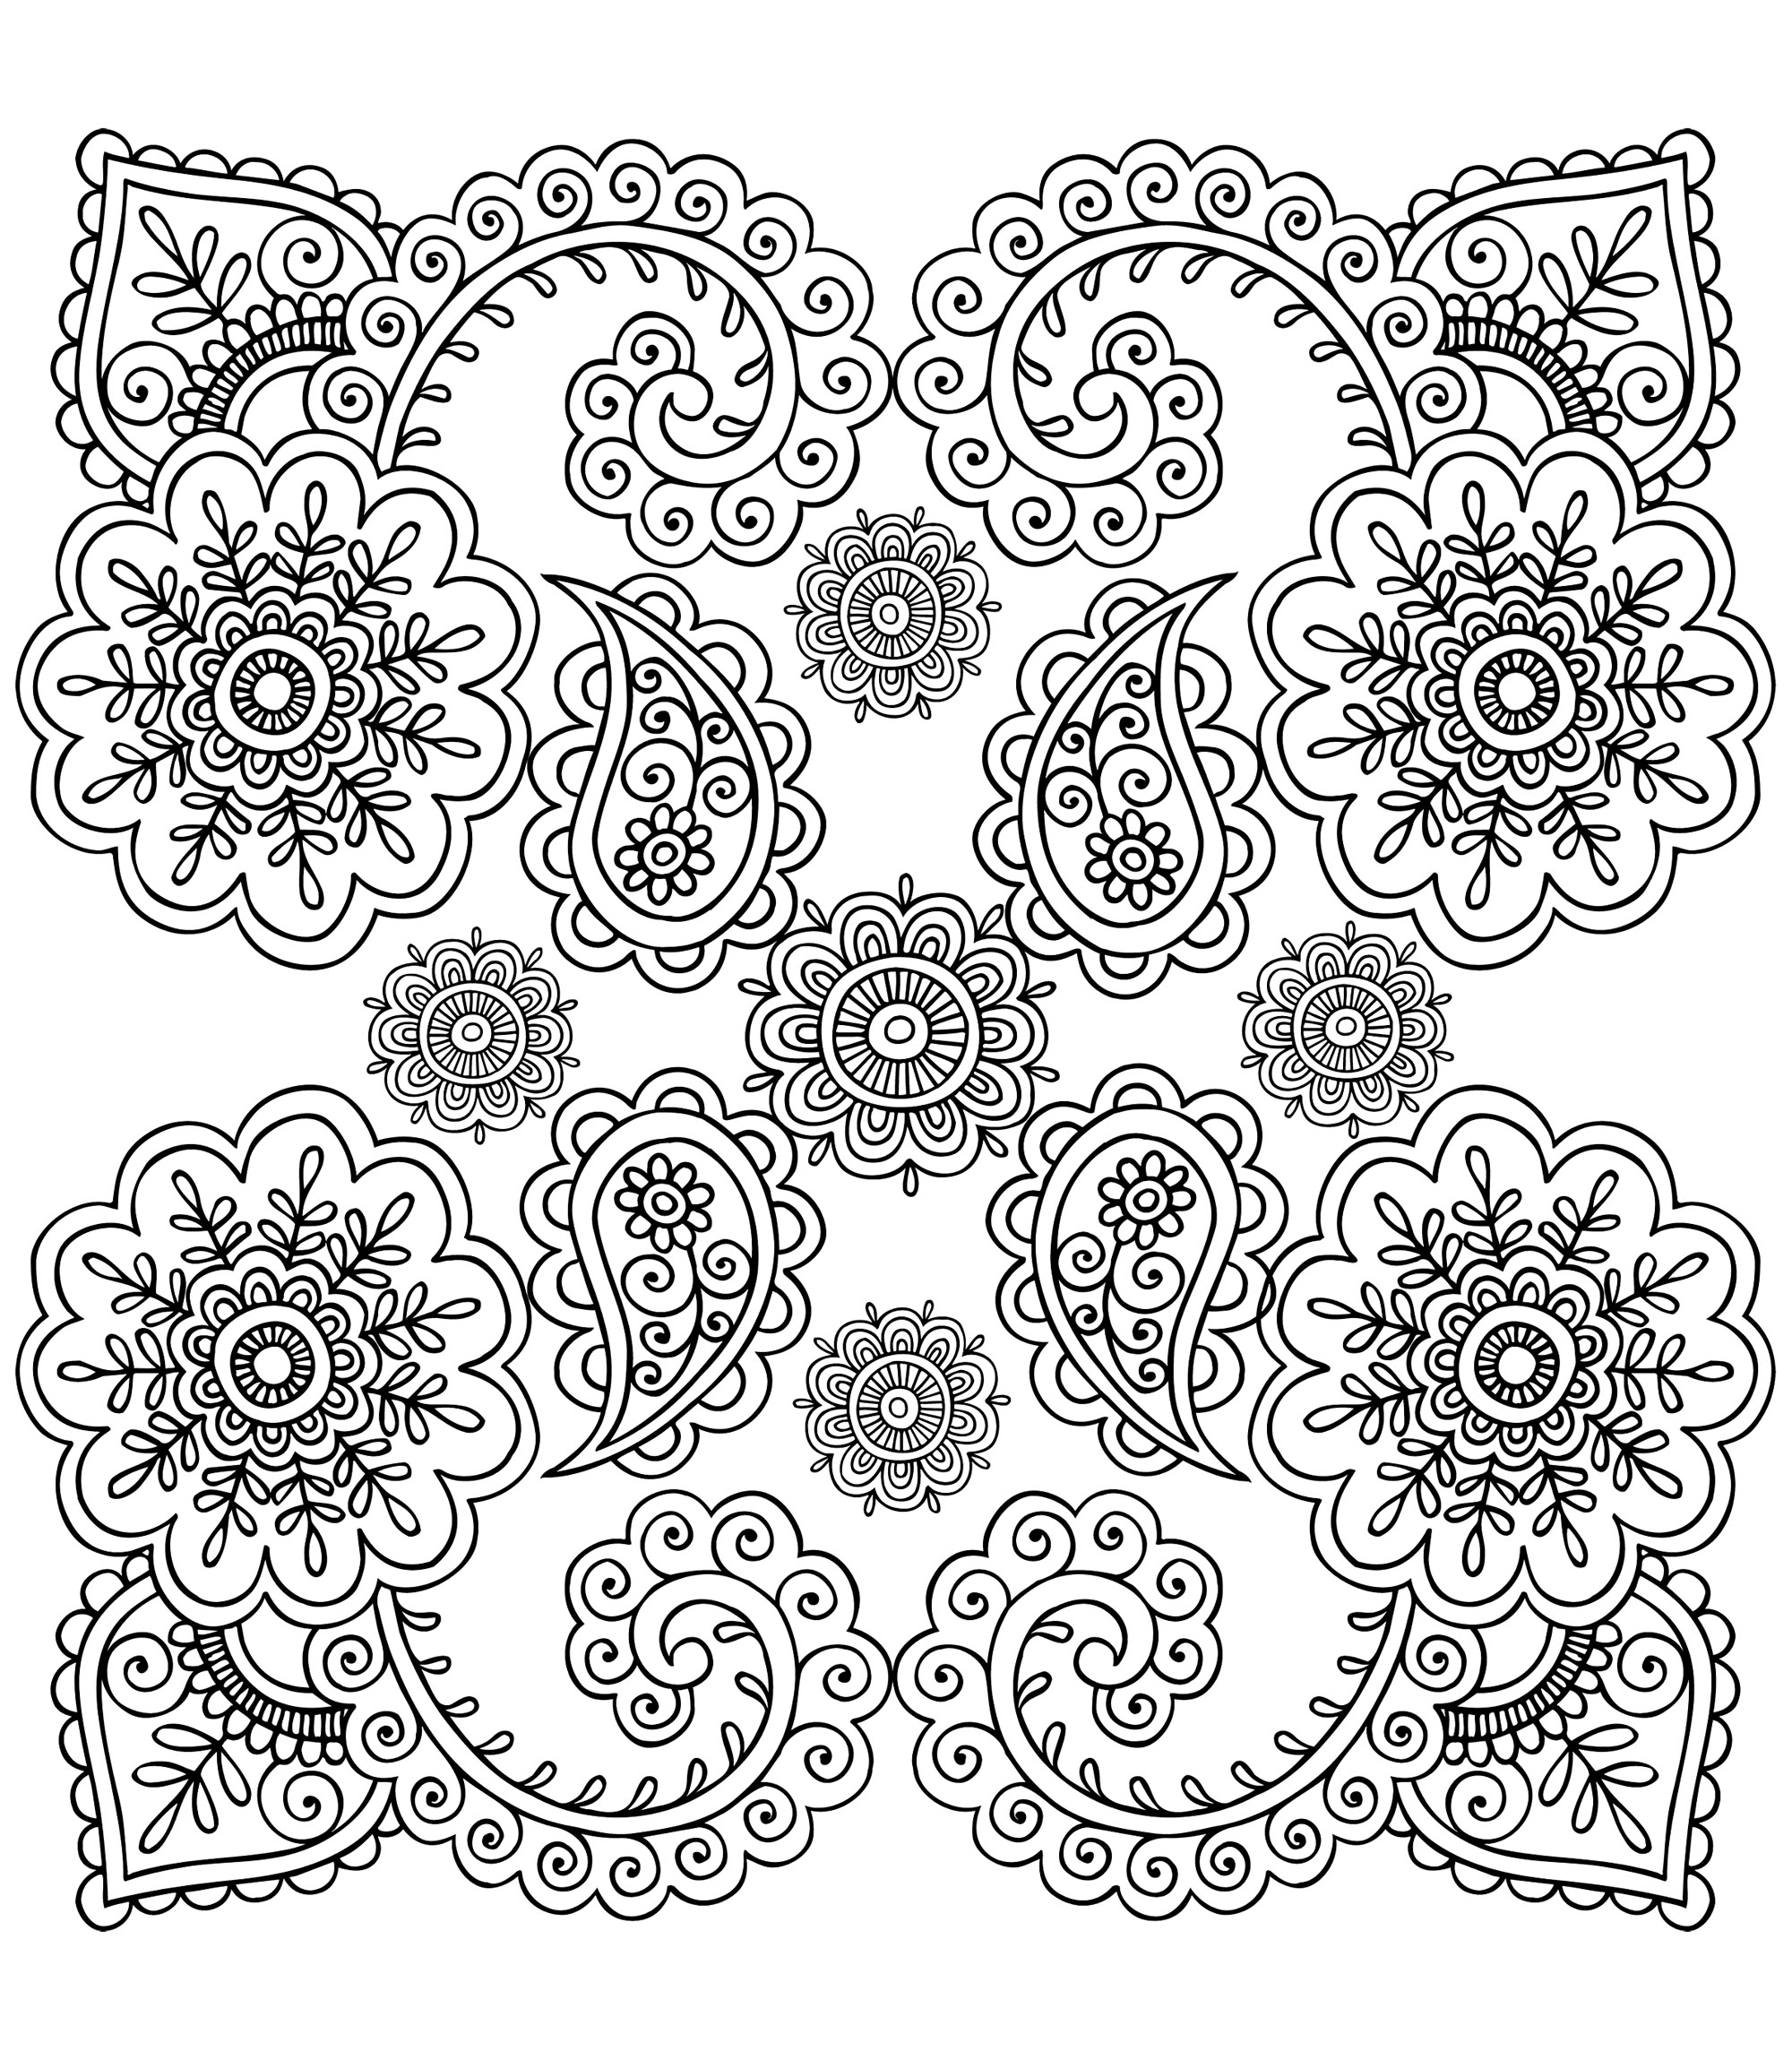 Anti stress flowers - Anti stress Adult Coloring Pages